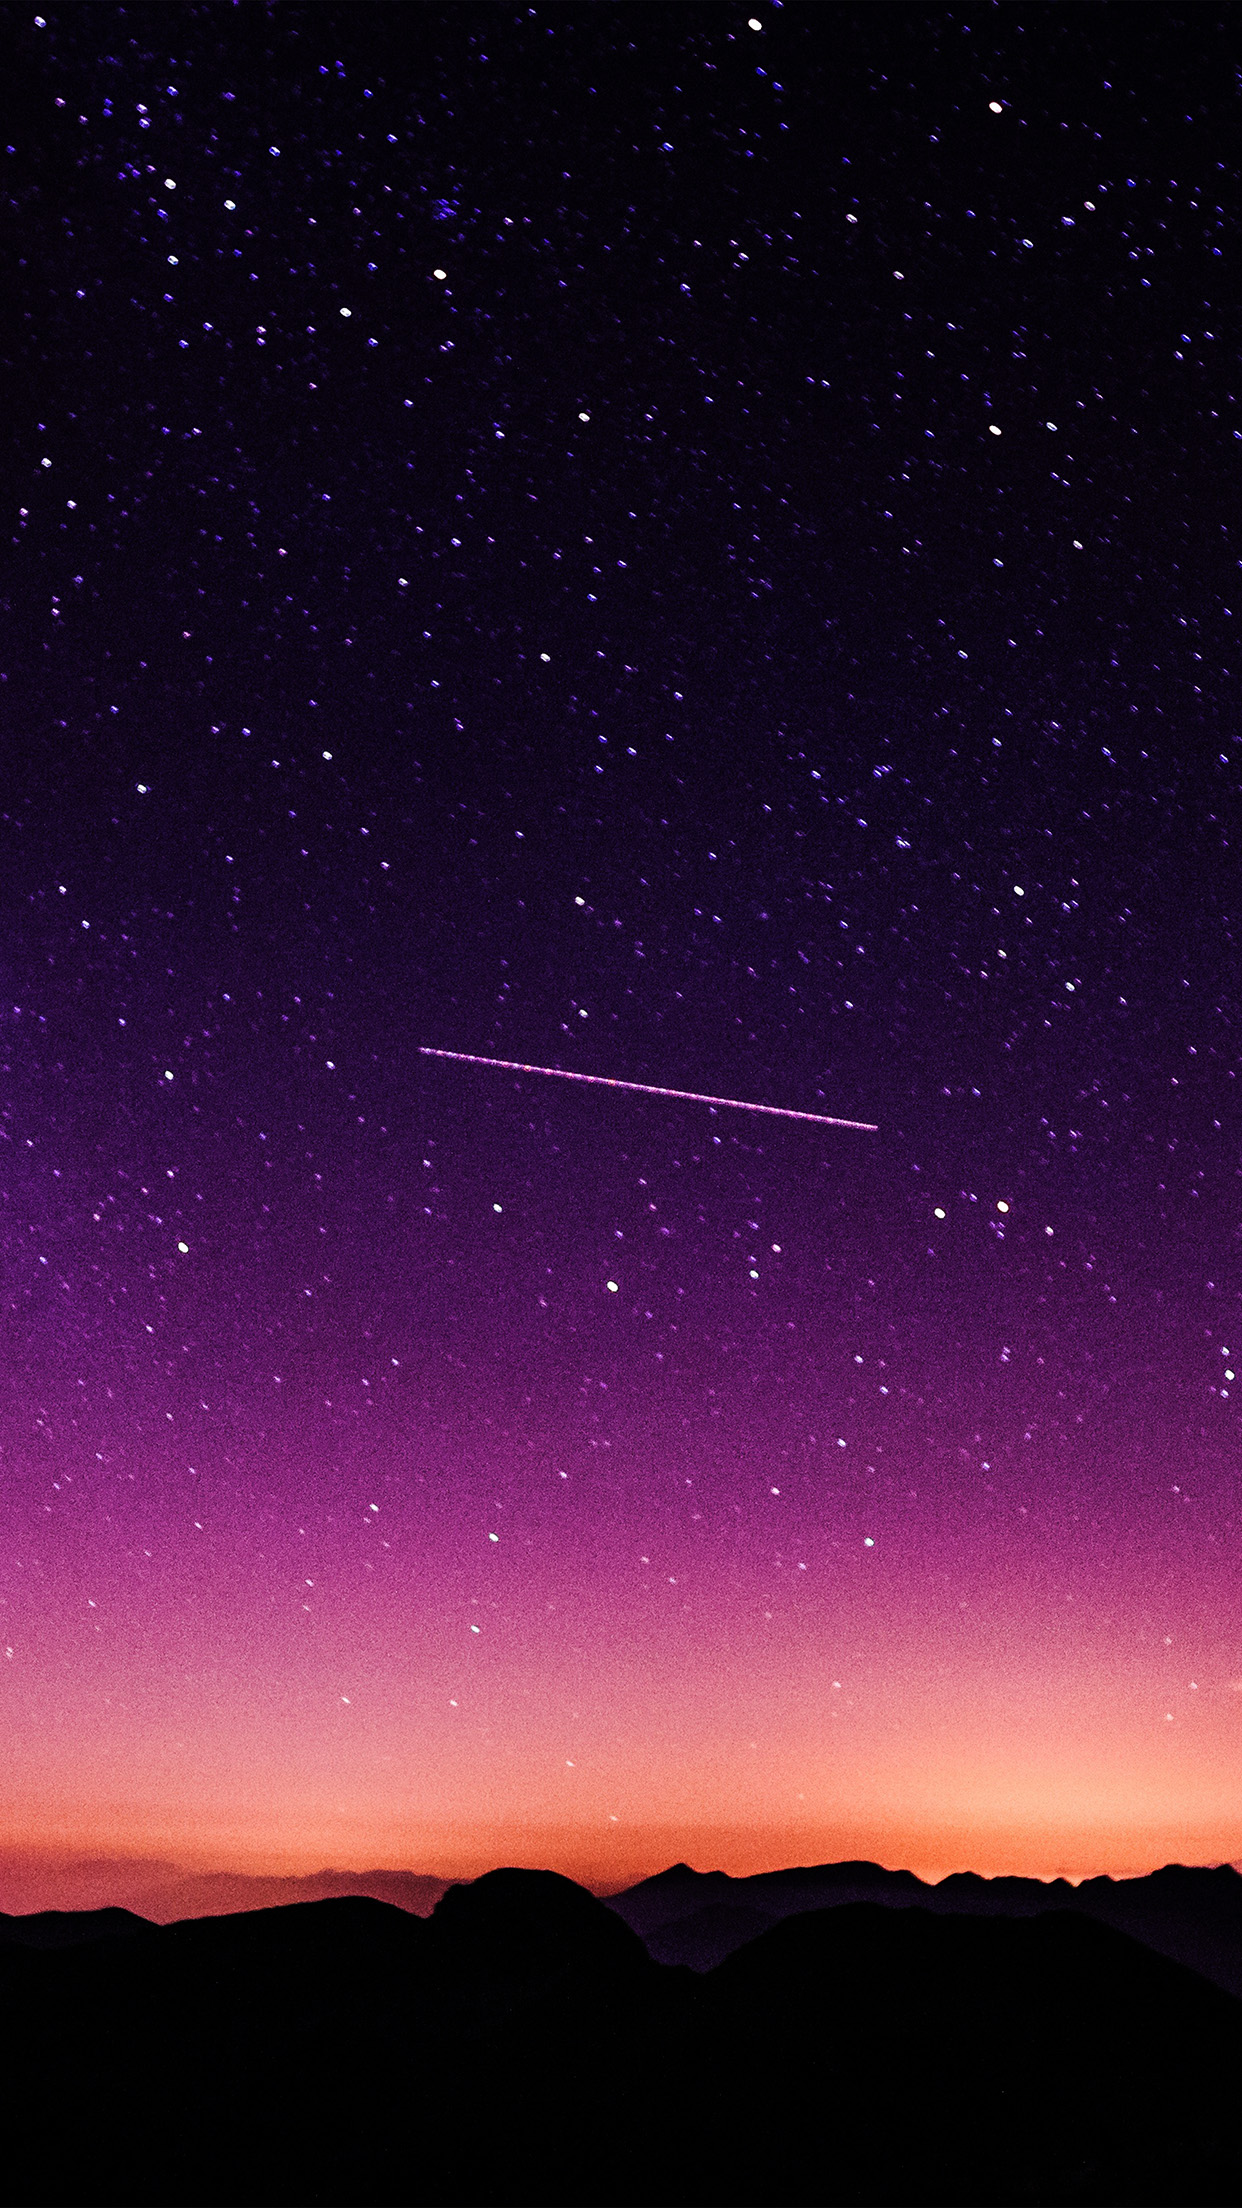 Ne63 star galaxy night sky mountain purple red nature